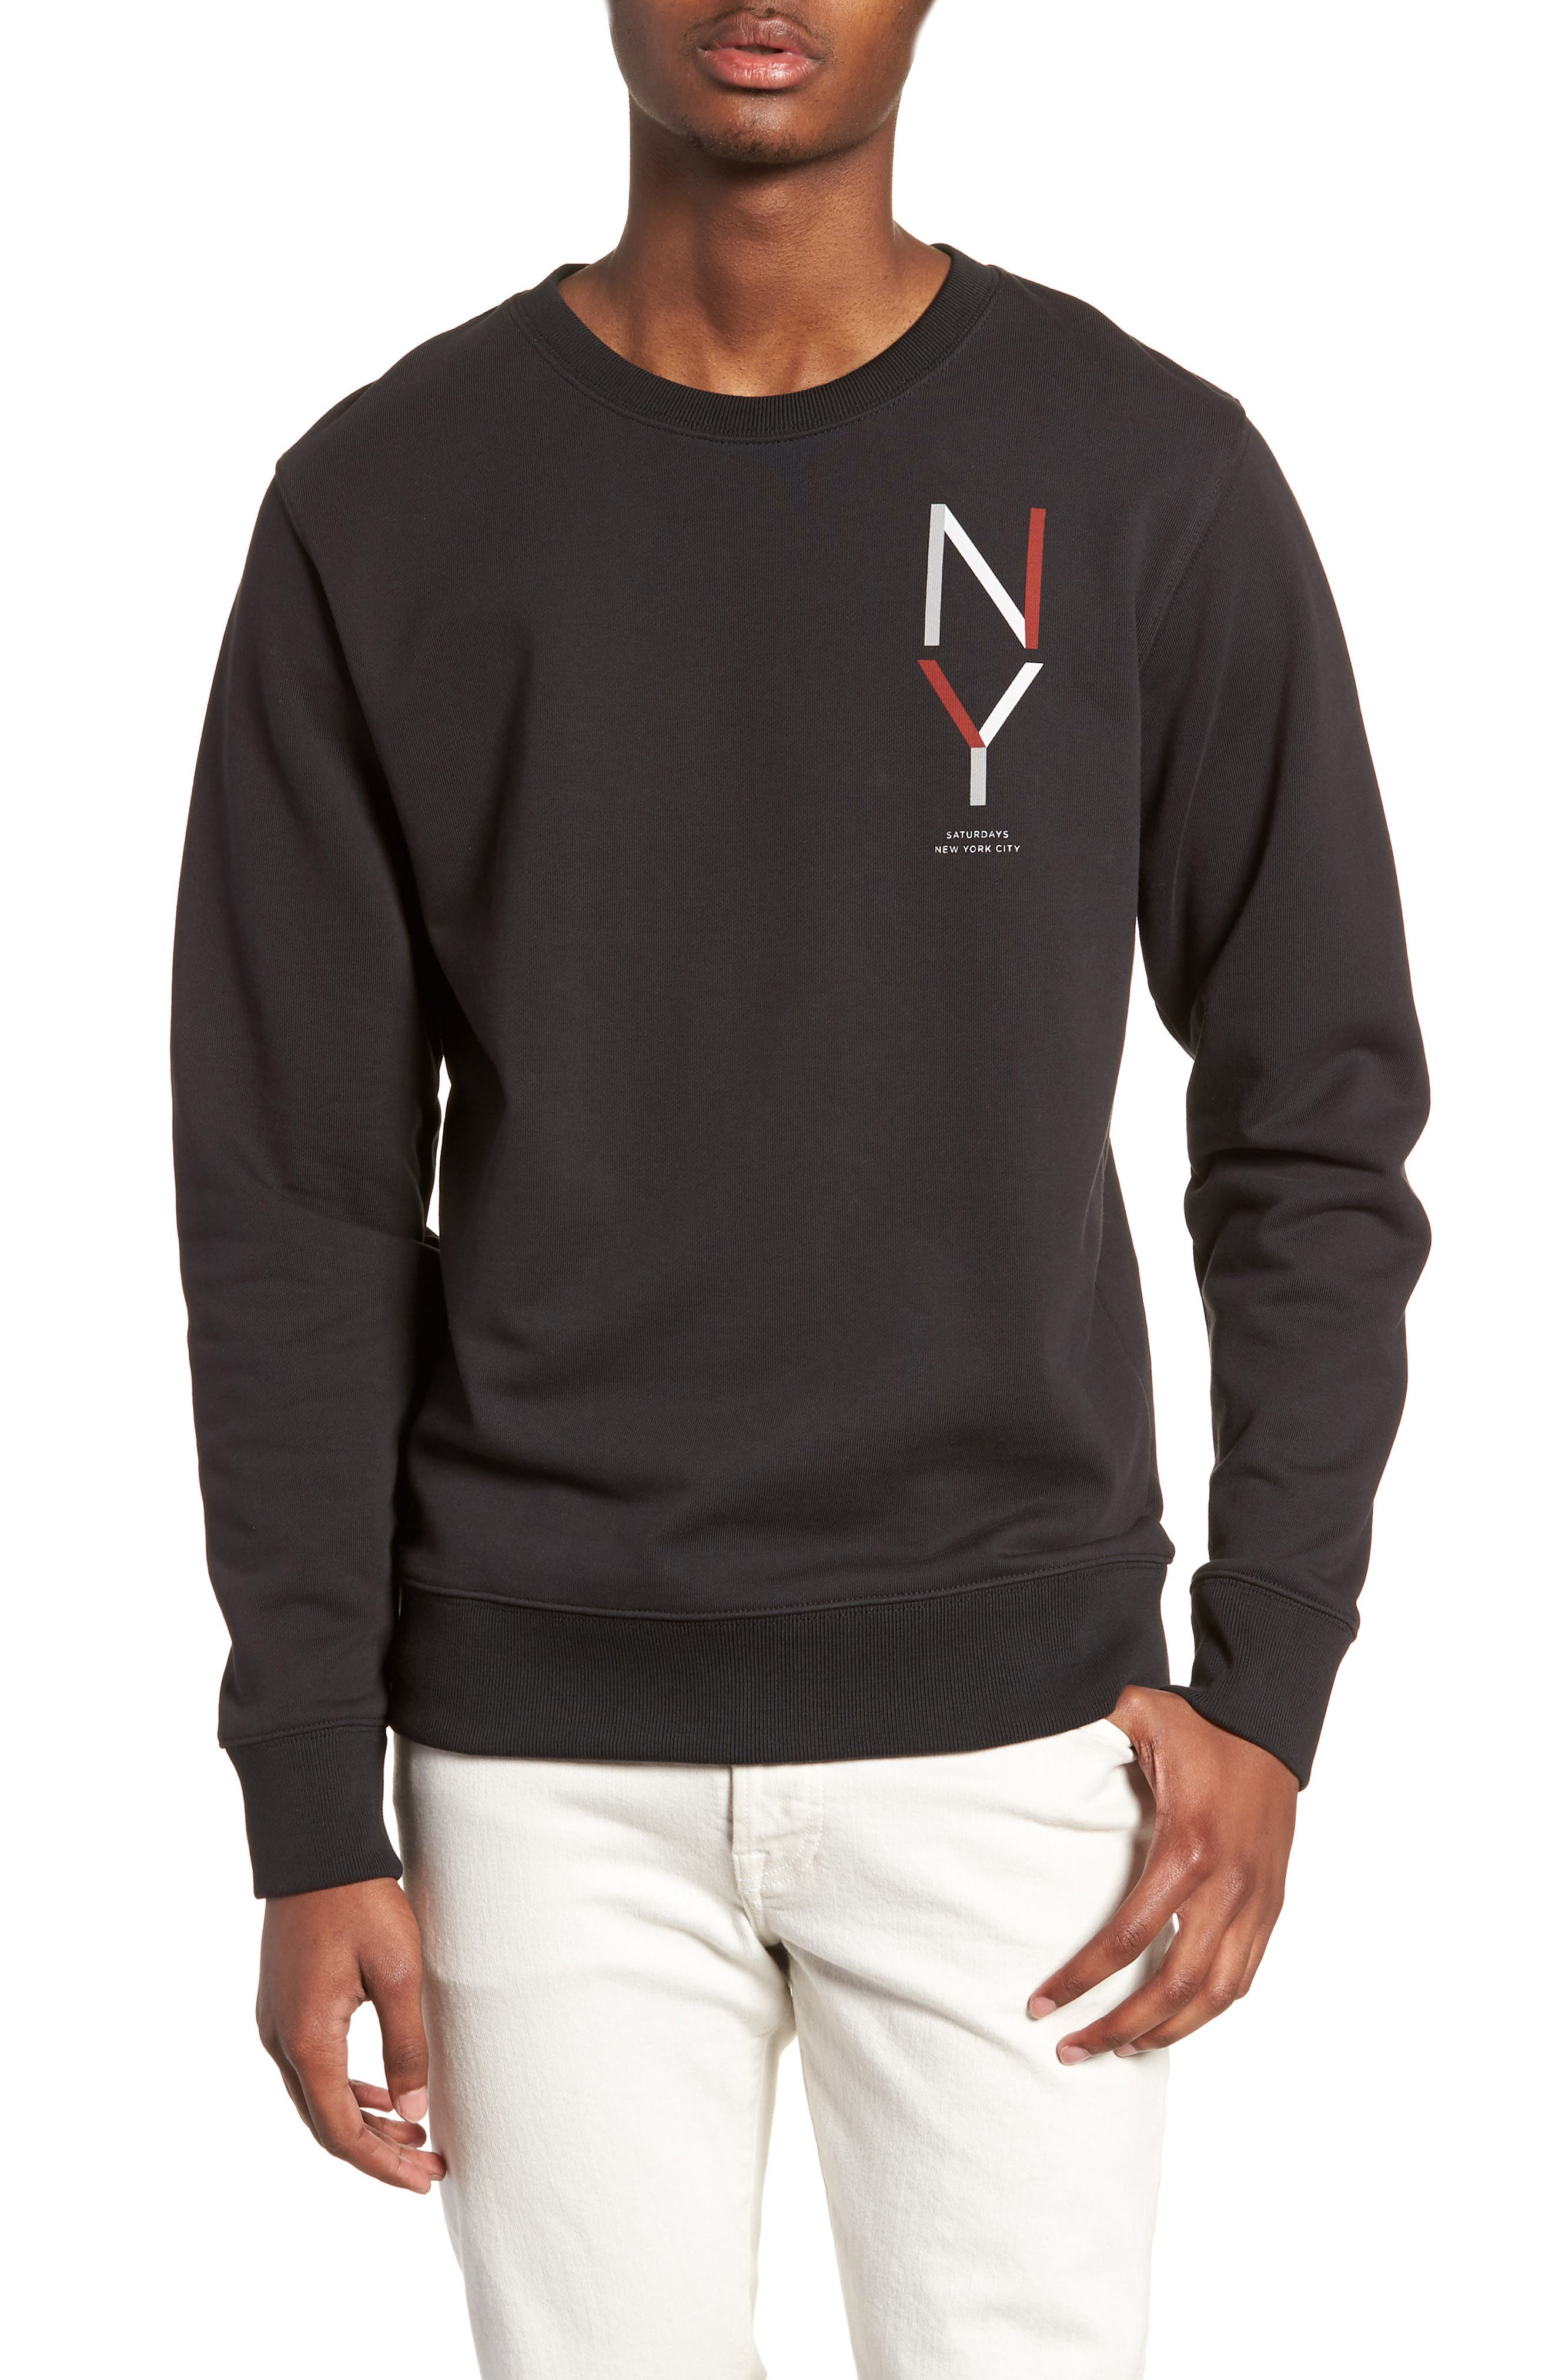 Bowery NY Sweatshirt,                             Main thumbnail 1, color,                             Black